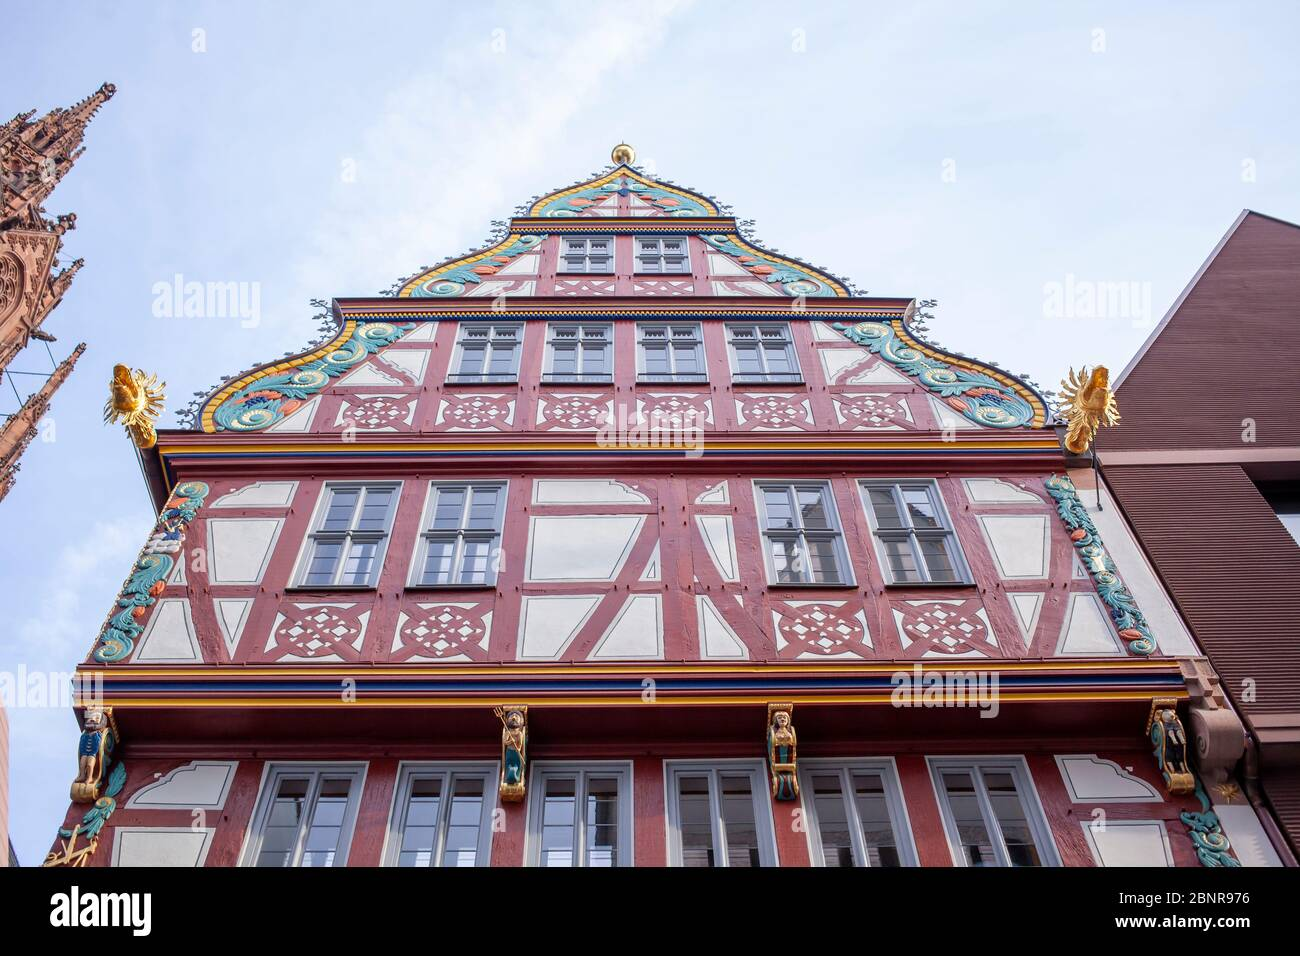 Half-timbered house on the Golden Libra, on the left cathedral tower ,, New Old Town, Dom-Römer-Areal, Frankfurt am Main, Hesse, Germany Stock Photo